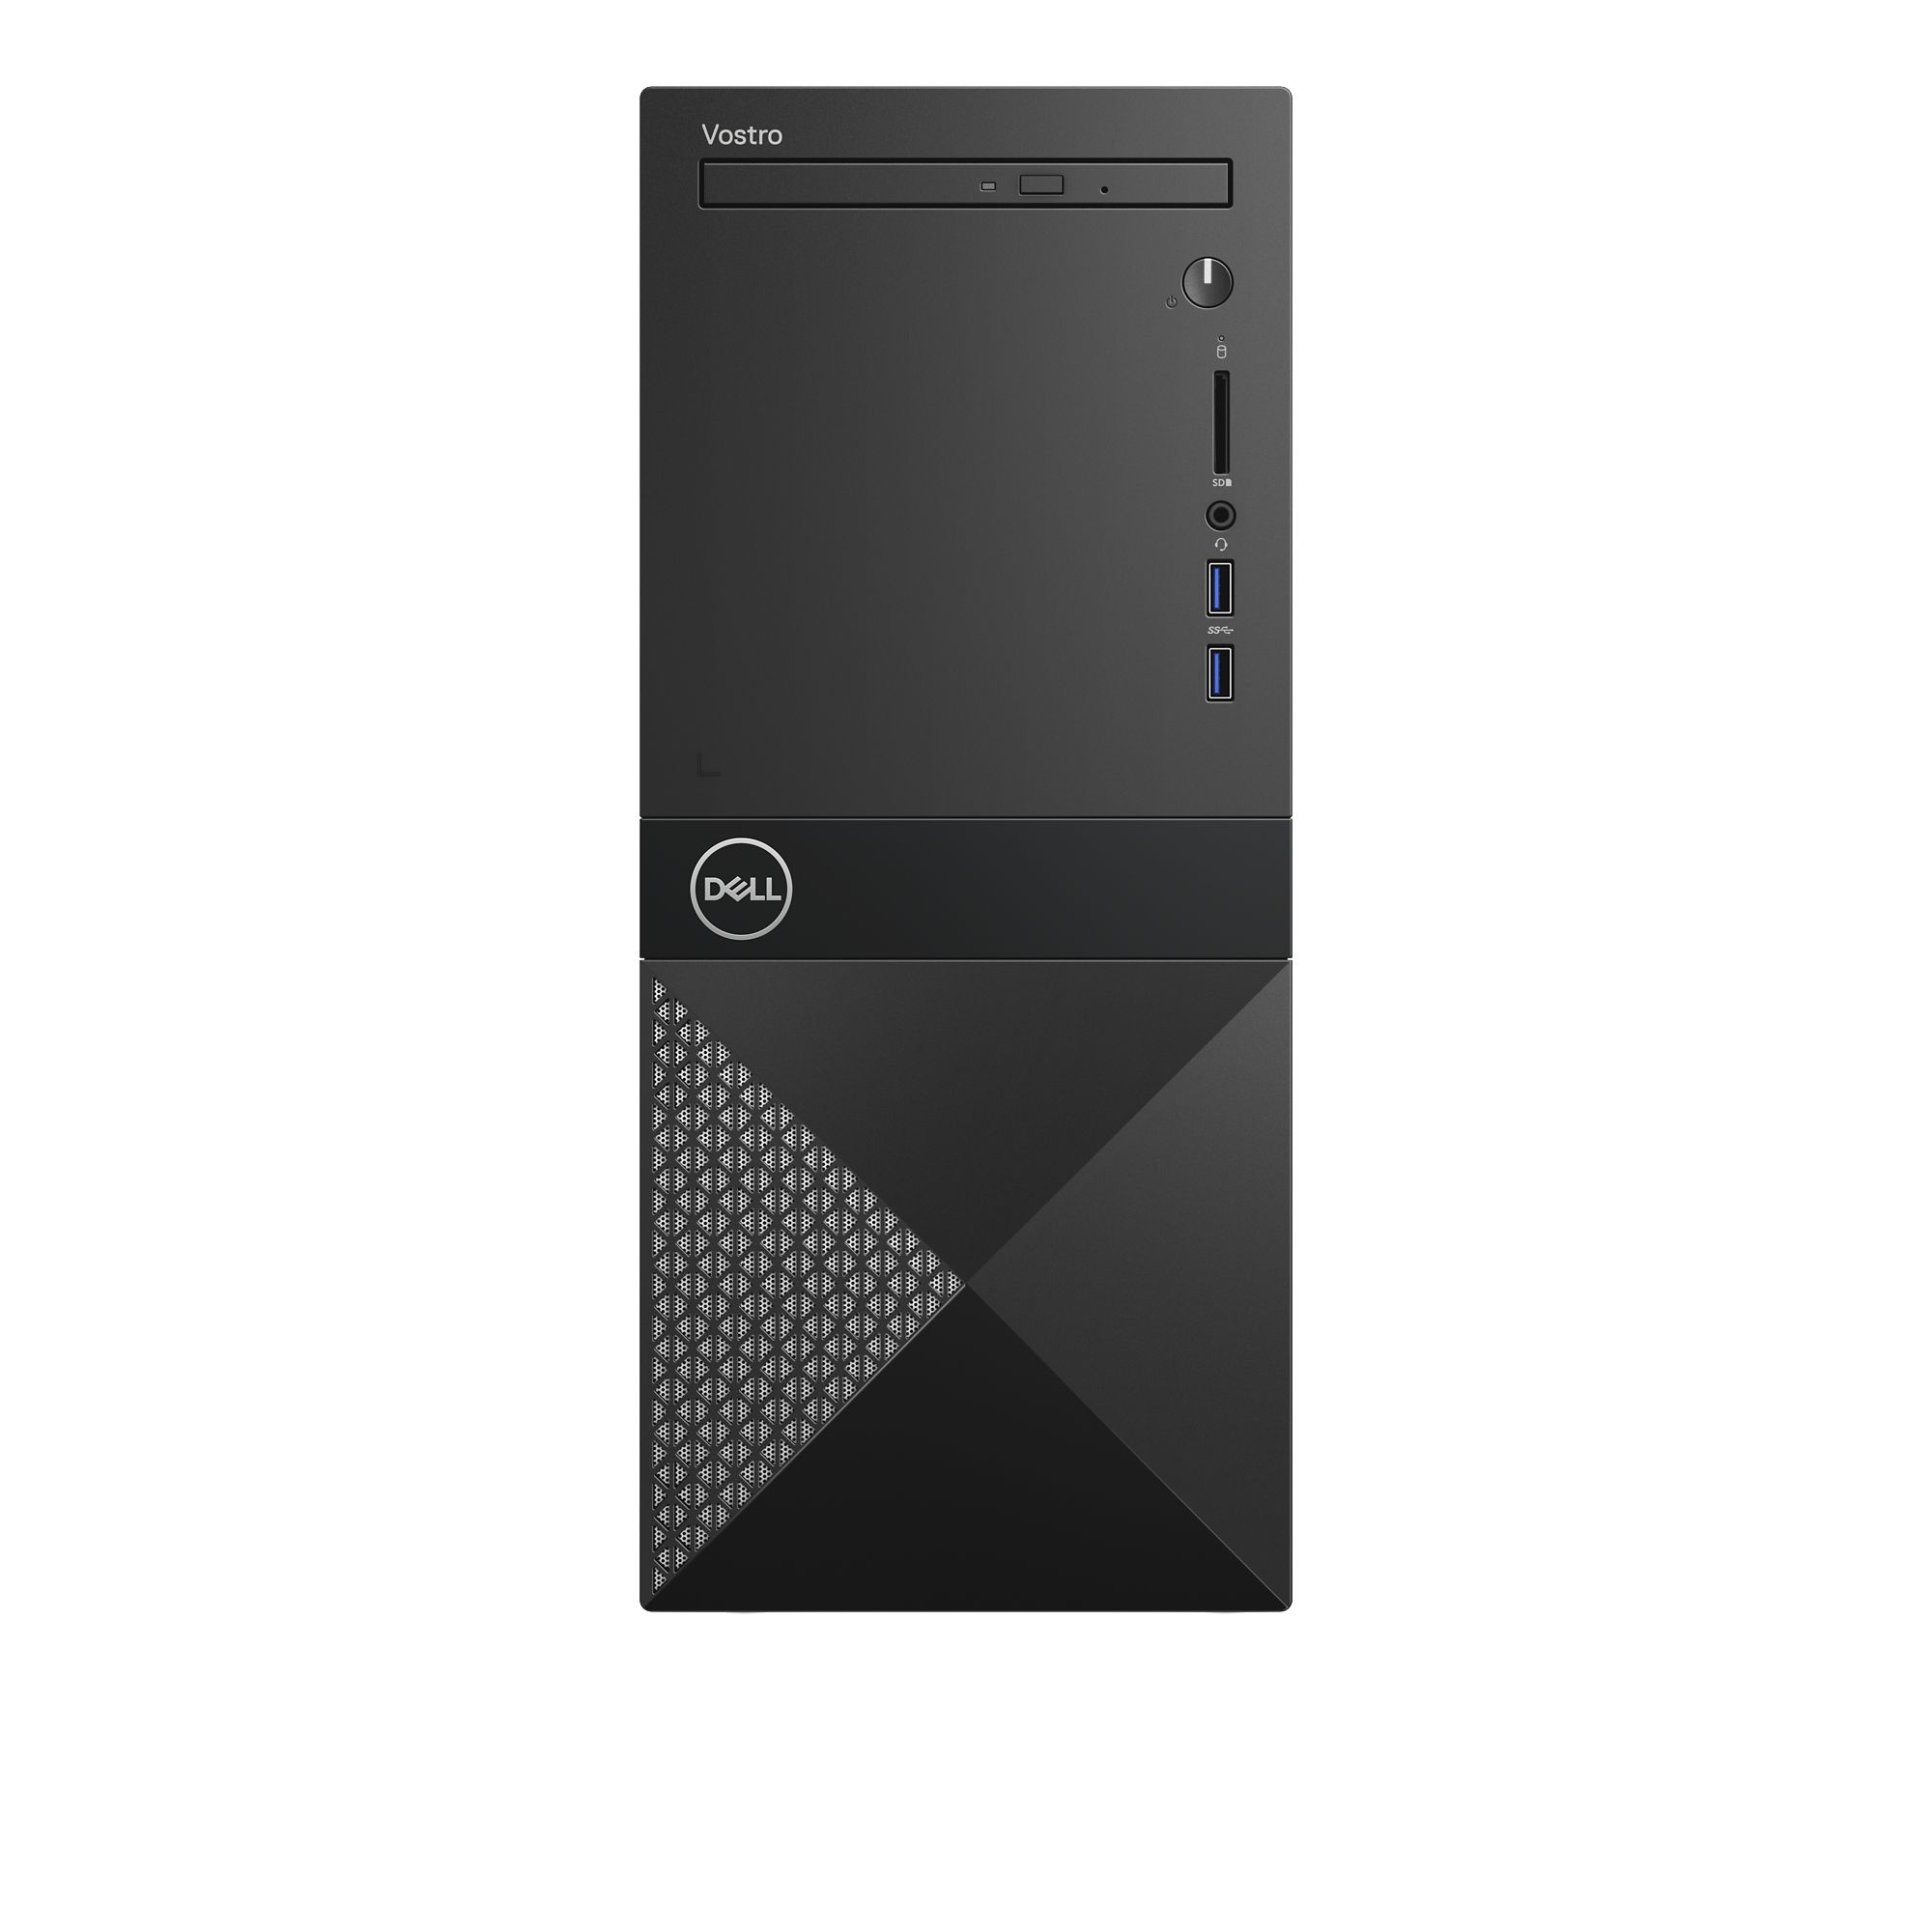 DELL VOSTRO 3670 N204VD3670BTOEME_U i3-8100 4GB 1TB O/B INTEL HD GRAPHICS 630 DVD/RW LINUX PC